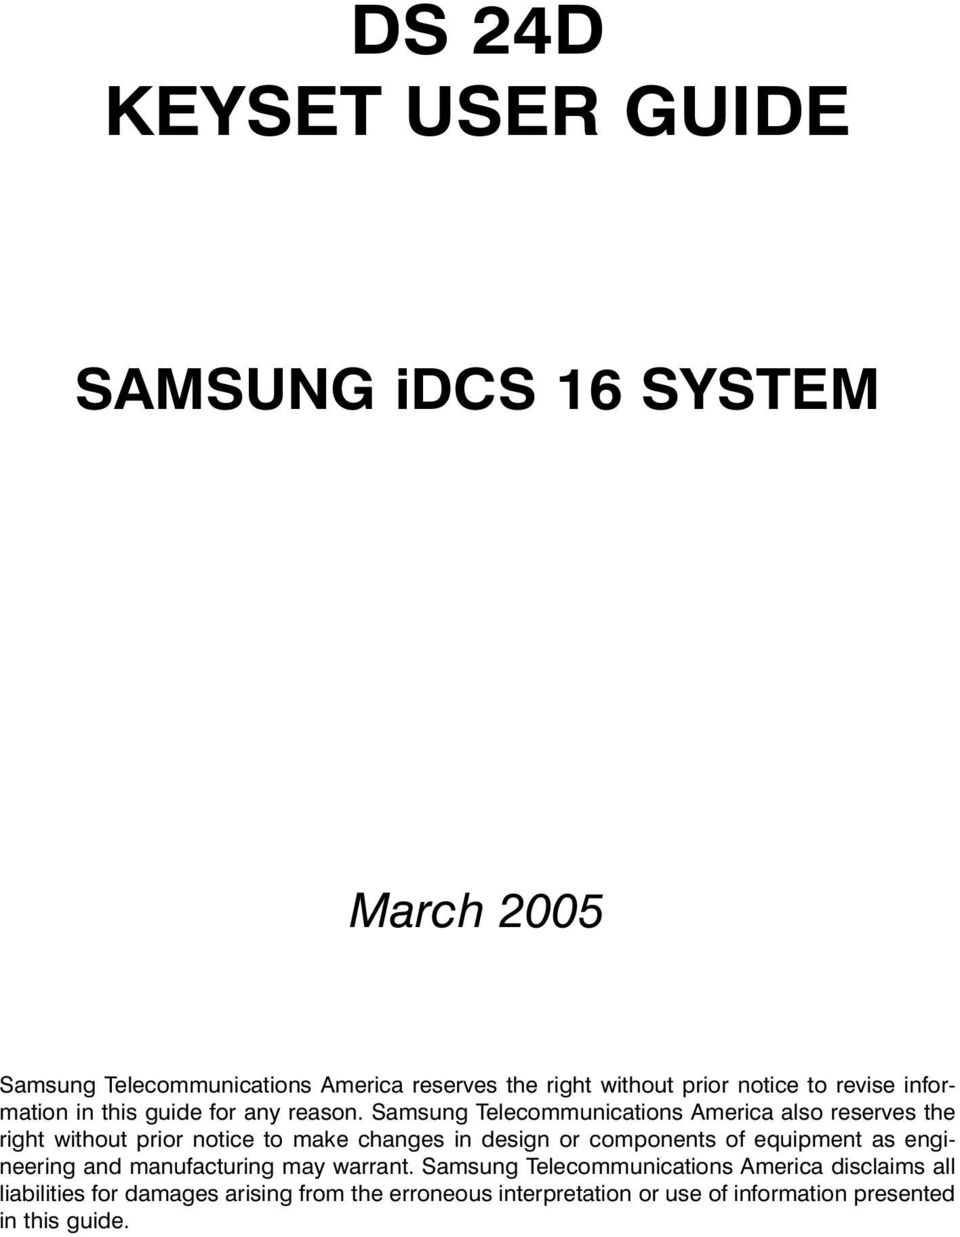 Samsung Telecommunications America also reserves the right without prior notice to make changes in design or components of